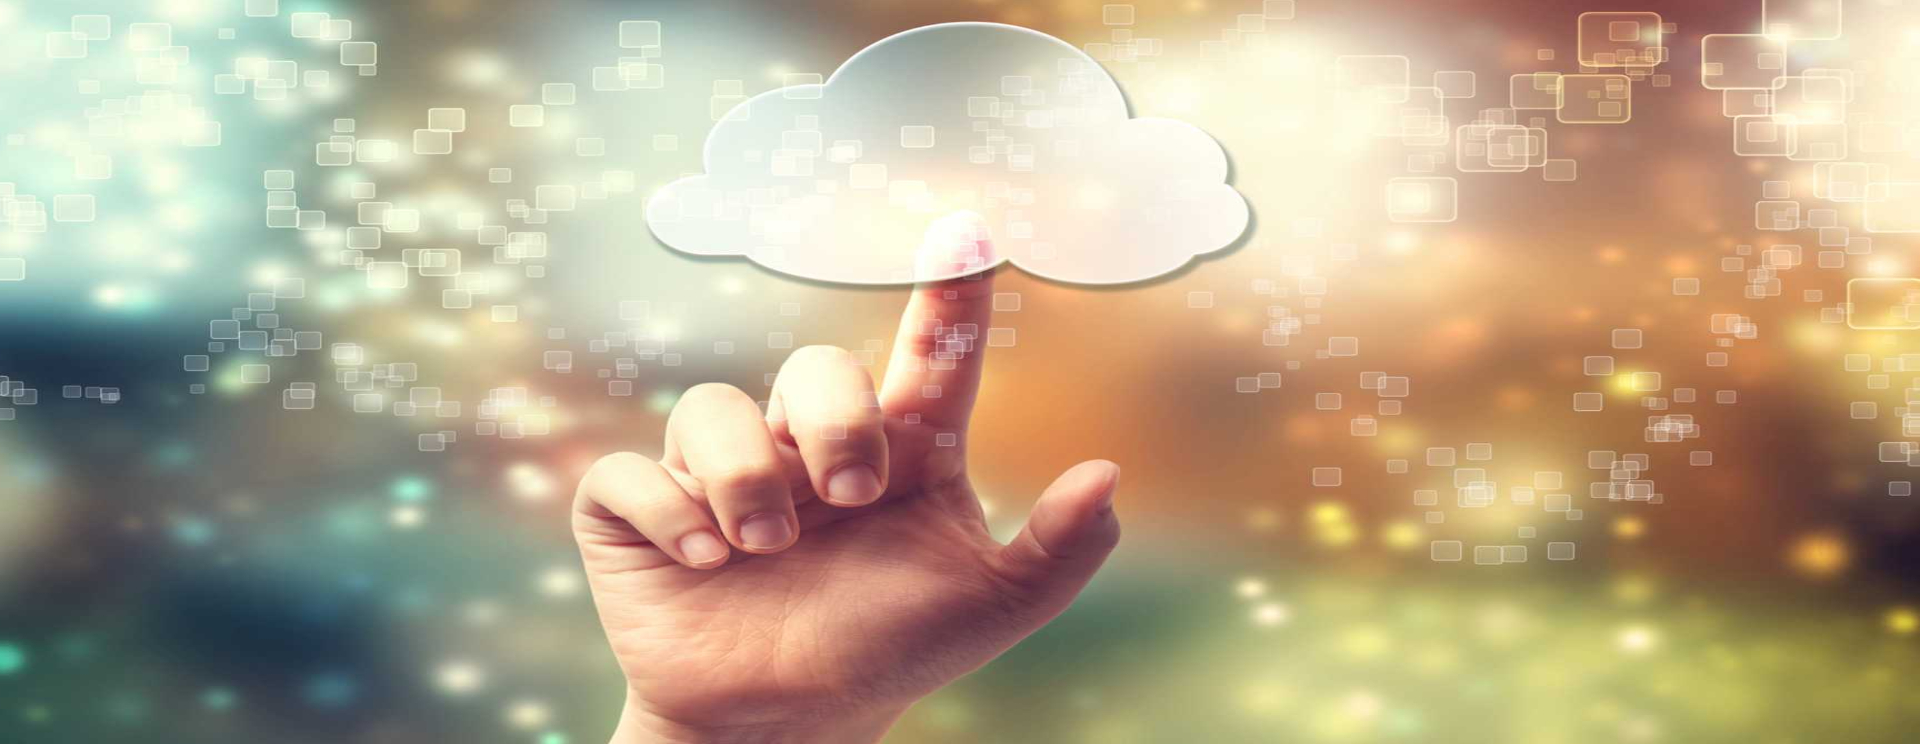 CROP - Cloud computing - Edge - symbol being pressed by hand - image courtesy of Depositphotos.